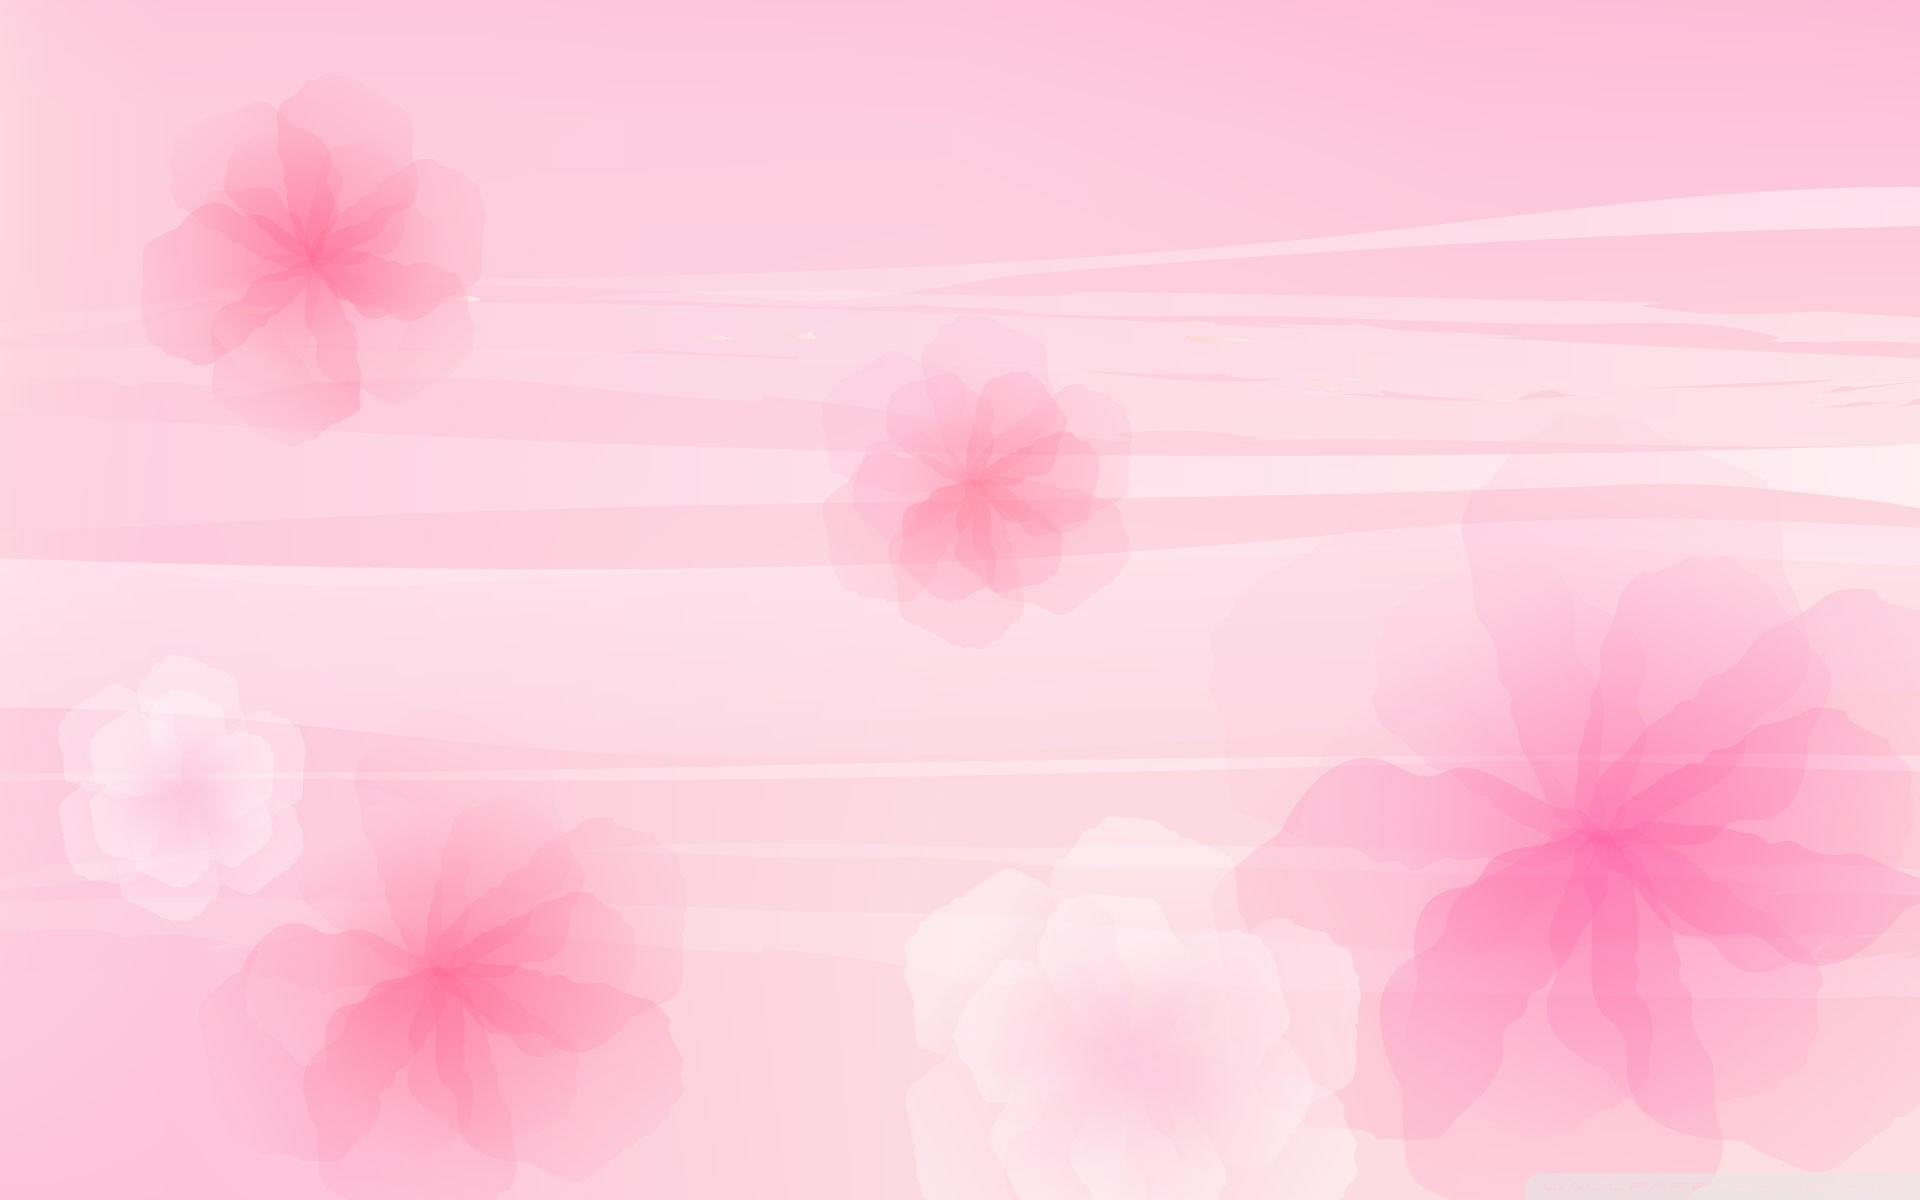 Cool Pink Wallpapers for Your Desktop